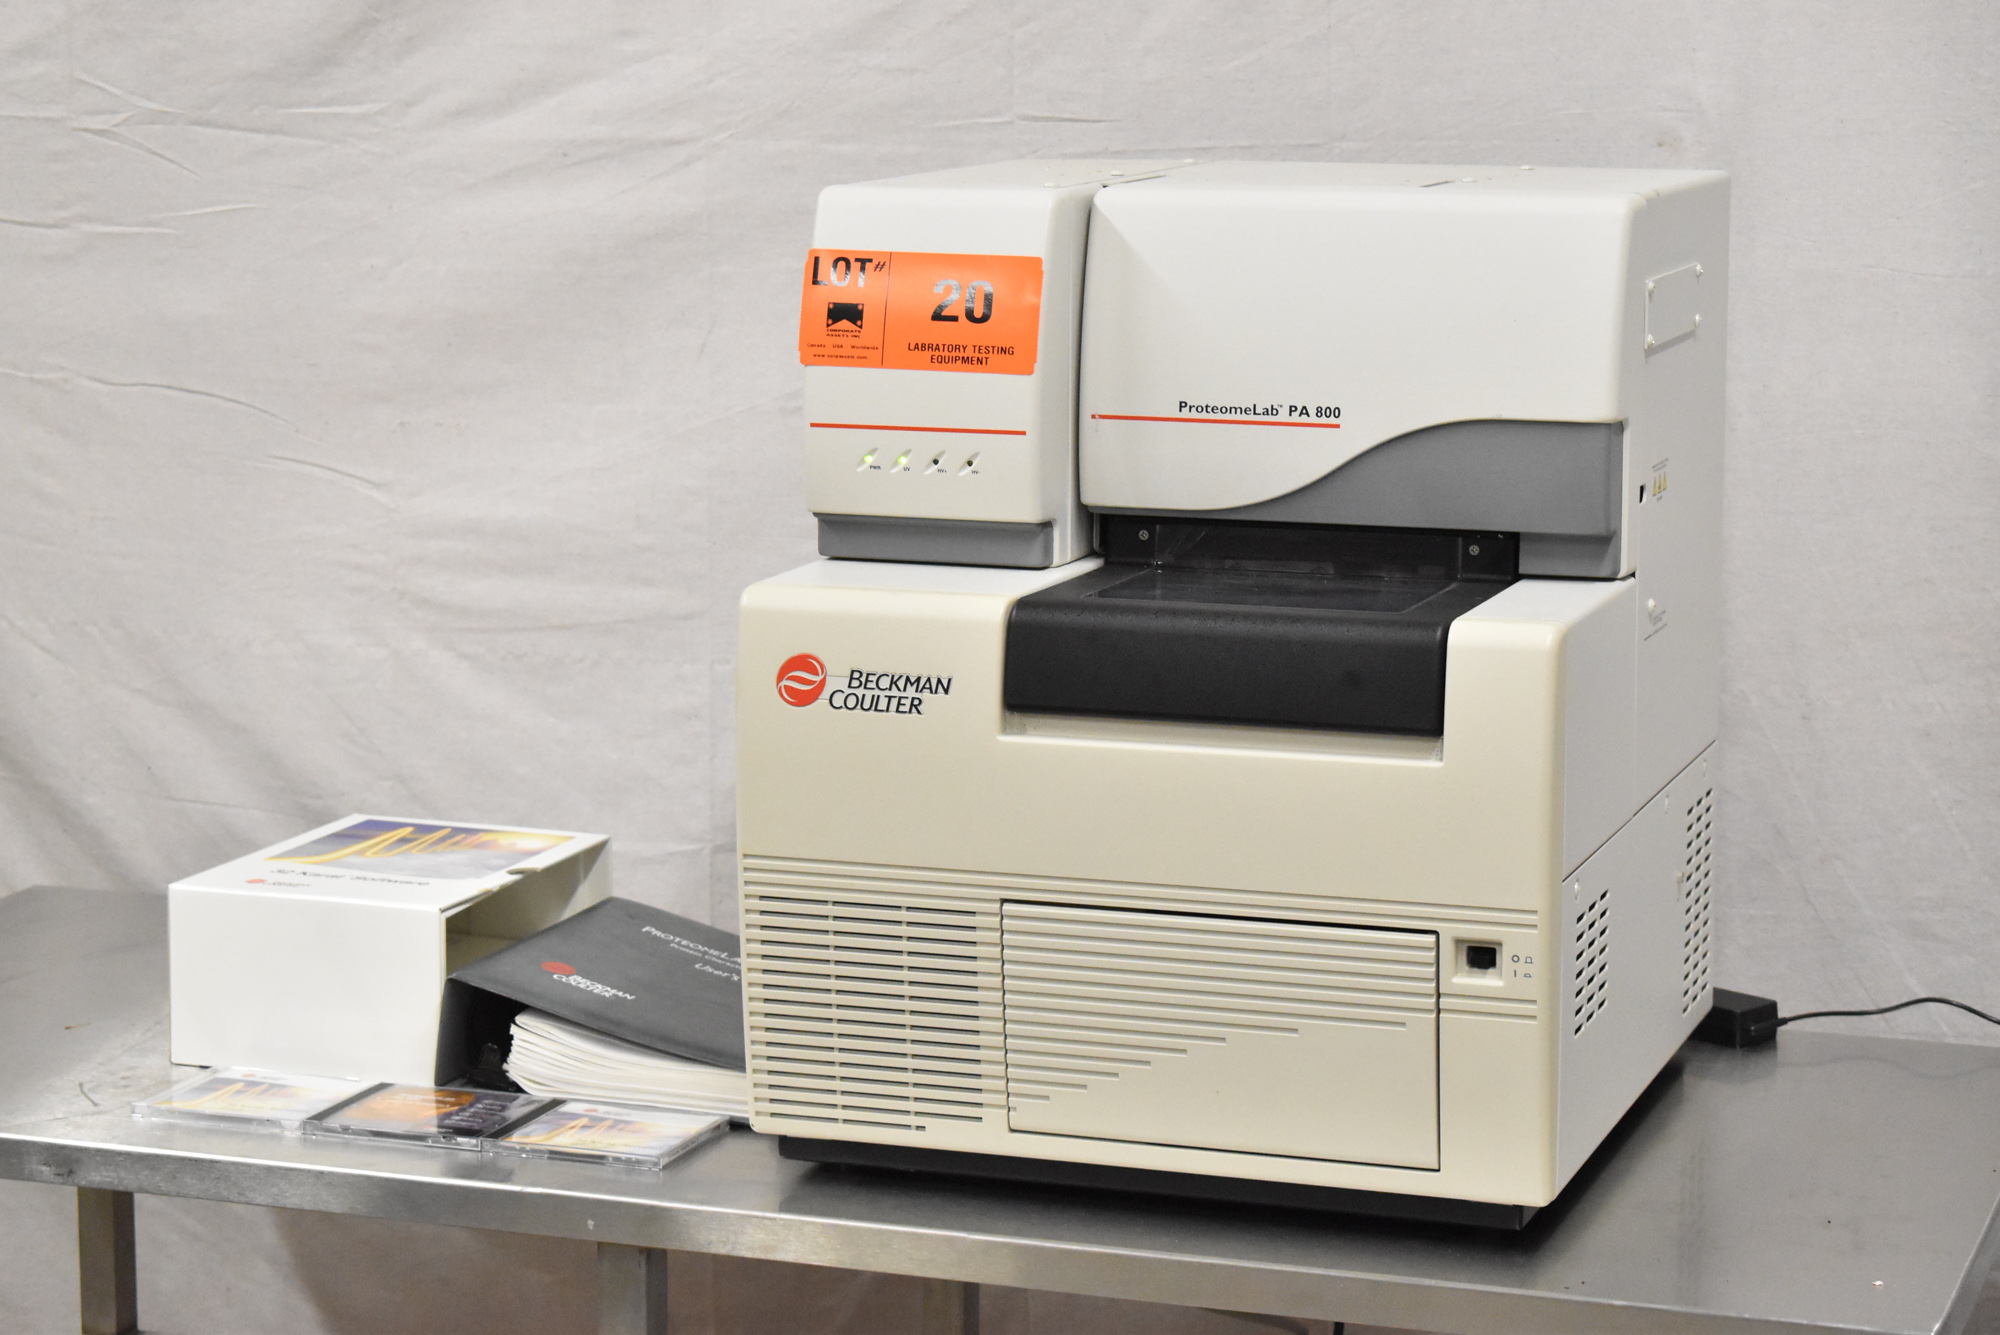 BECKMAN COULTER PROTEOMELAB PA800 PROTEIN CHARACTERIZATION SYSTEM WITH 32 KARAT VER 8.0 CD'S, - Image 2 of 10